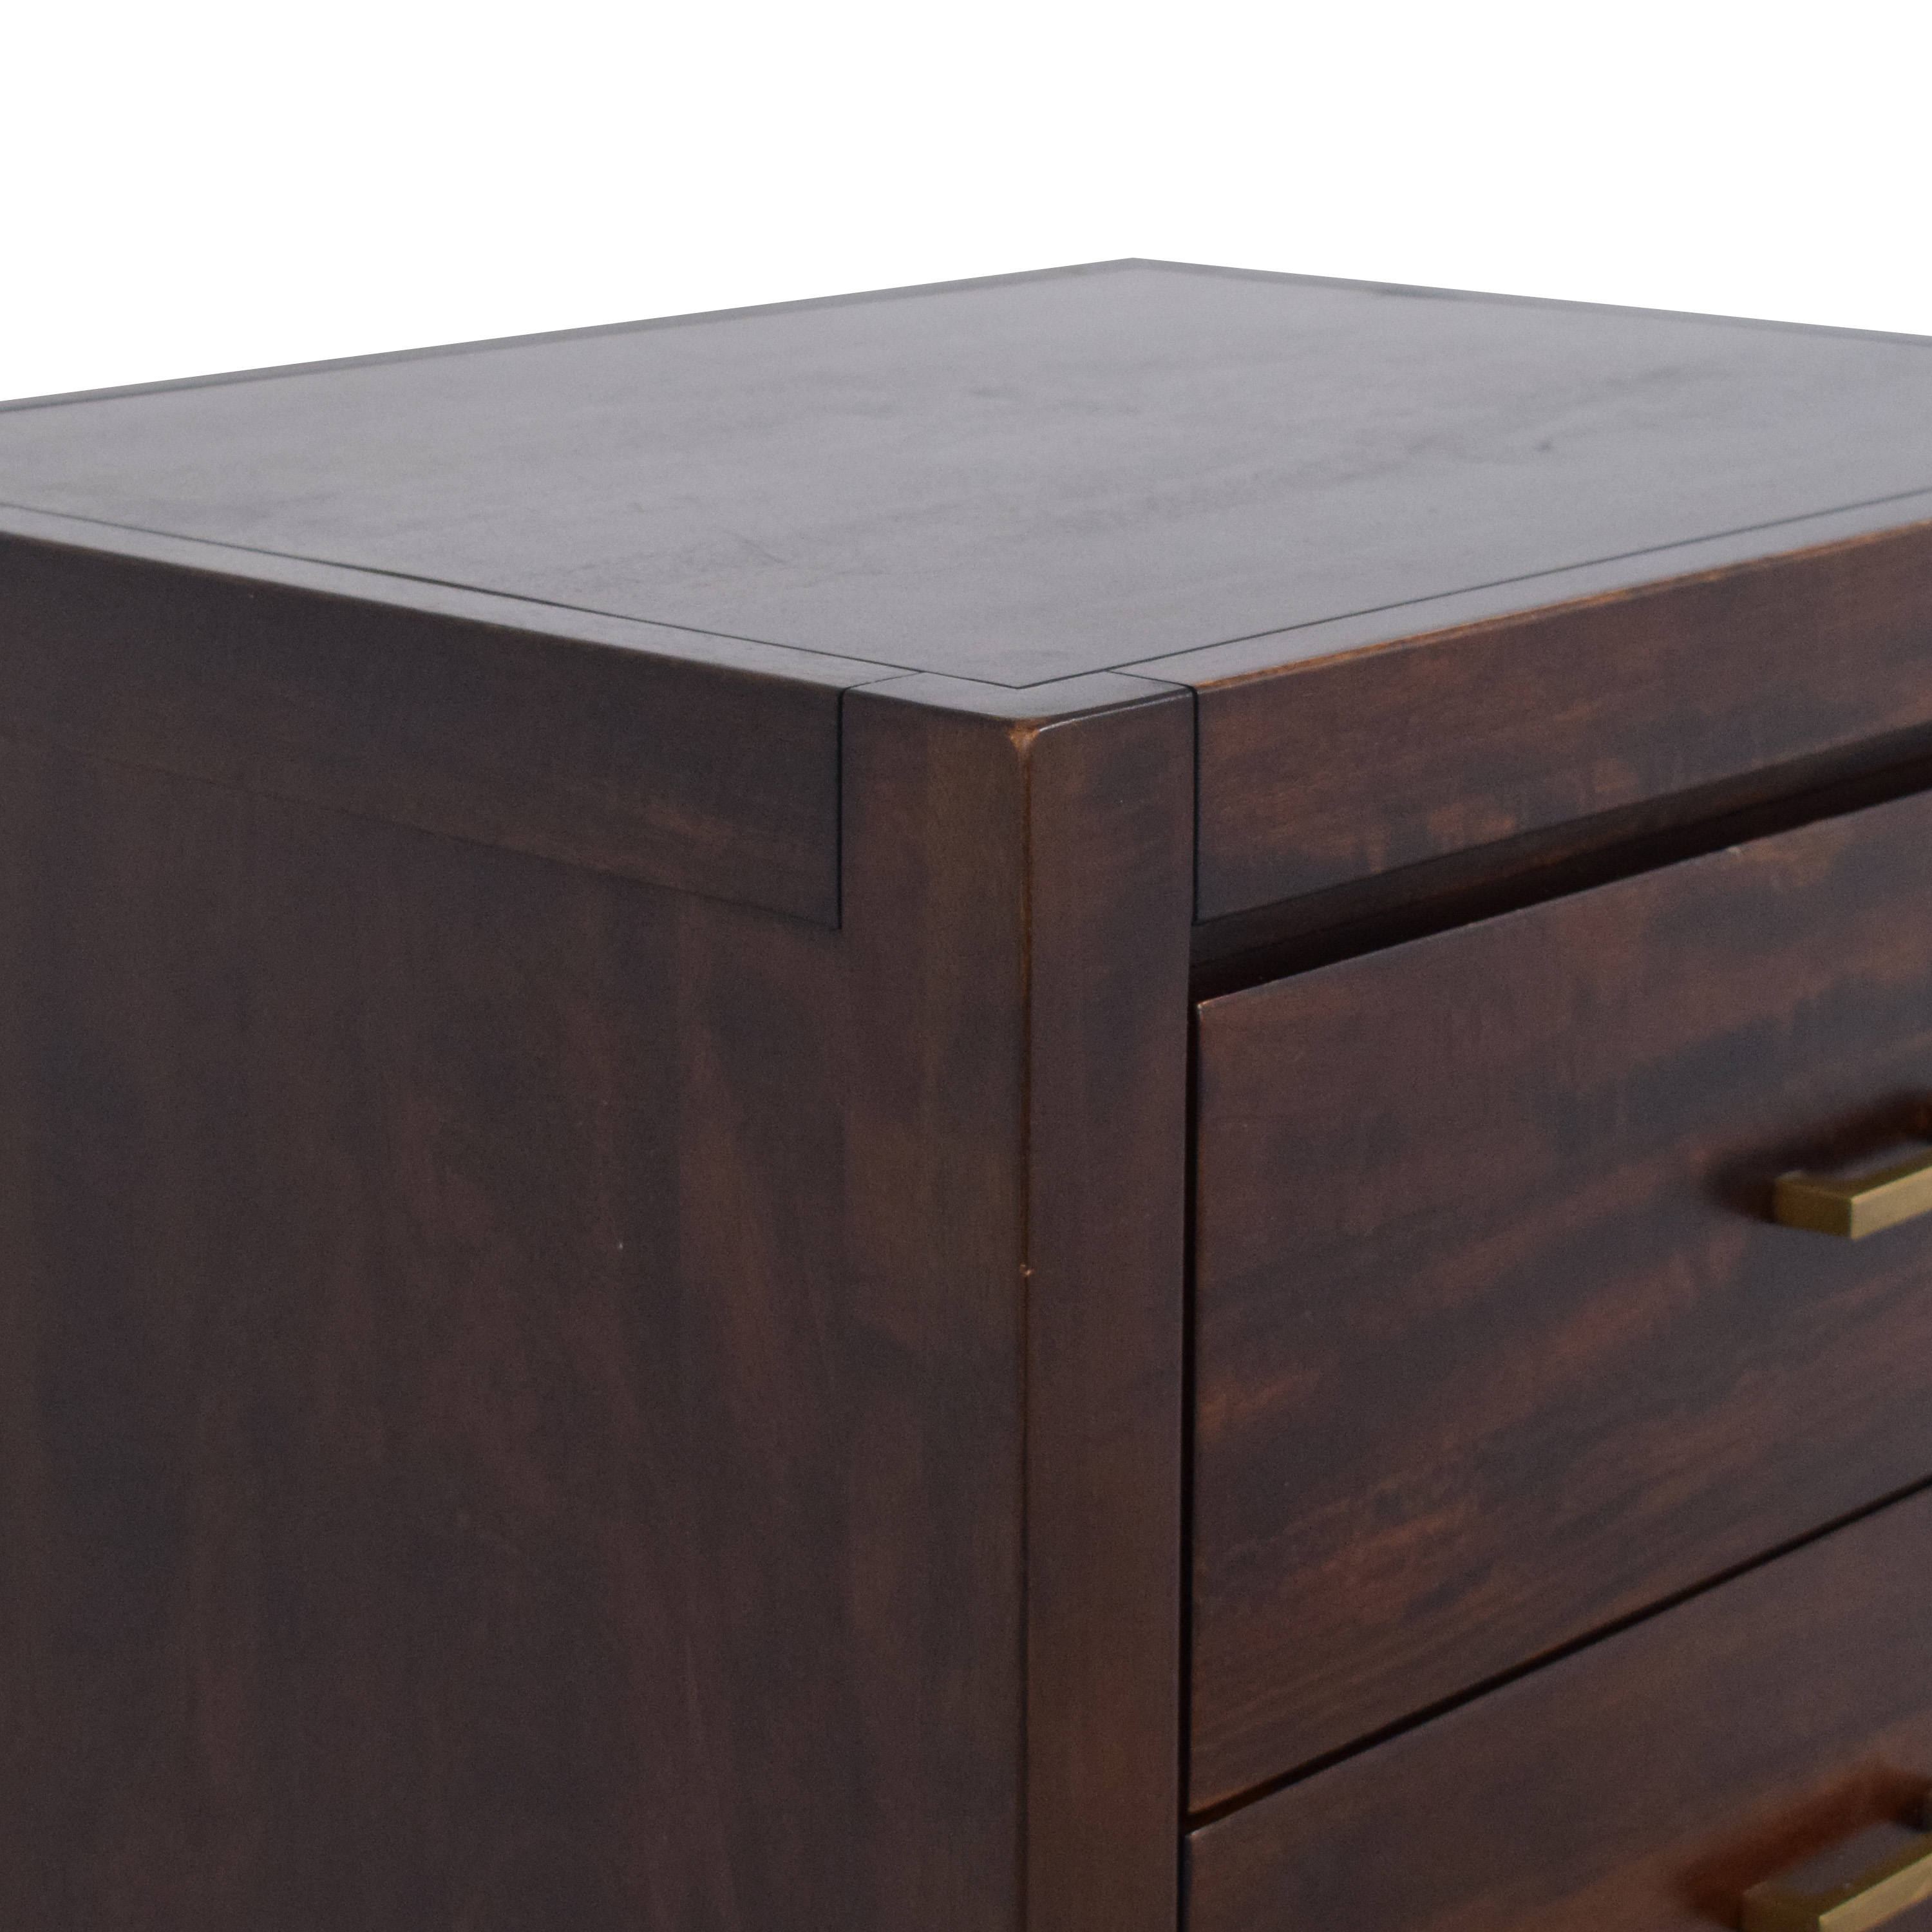 Crate & Barrel Crate & Barrel Tall Chest of Drawers Dressers